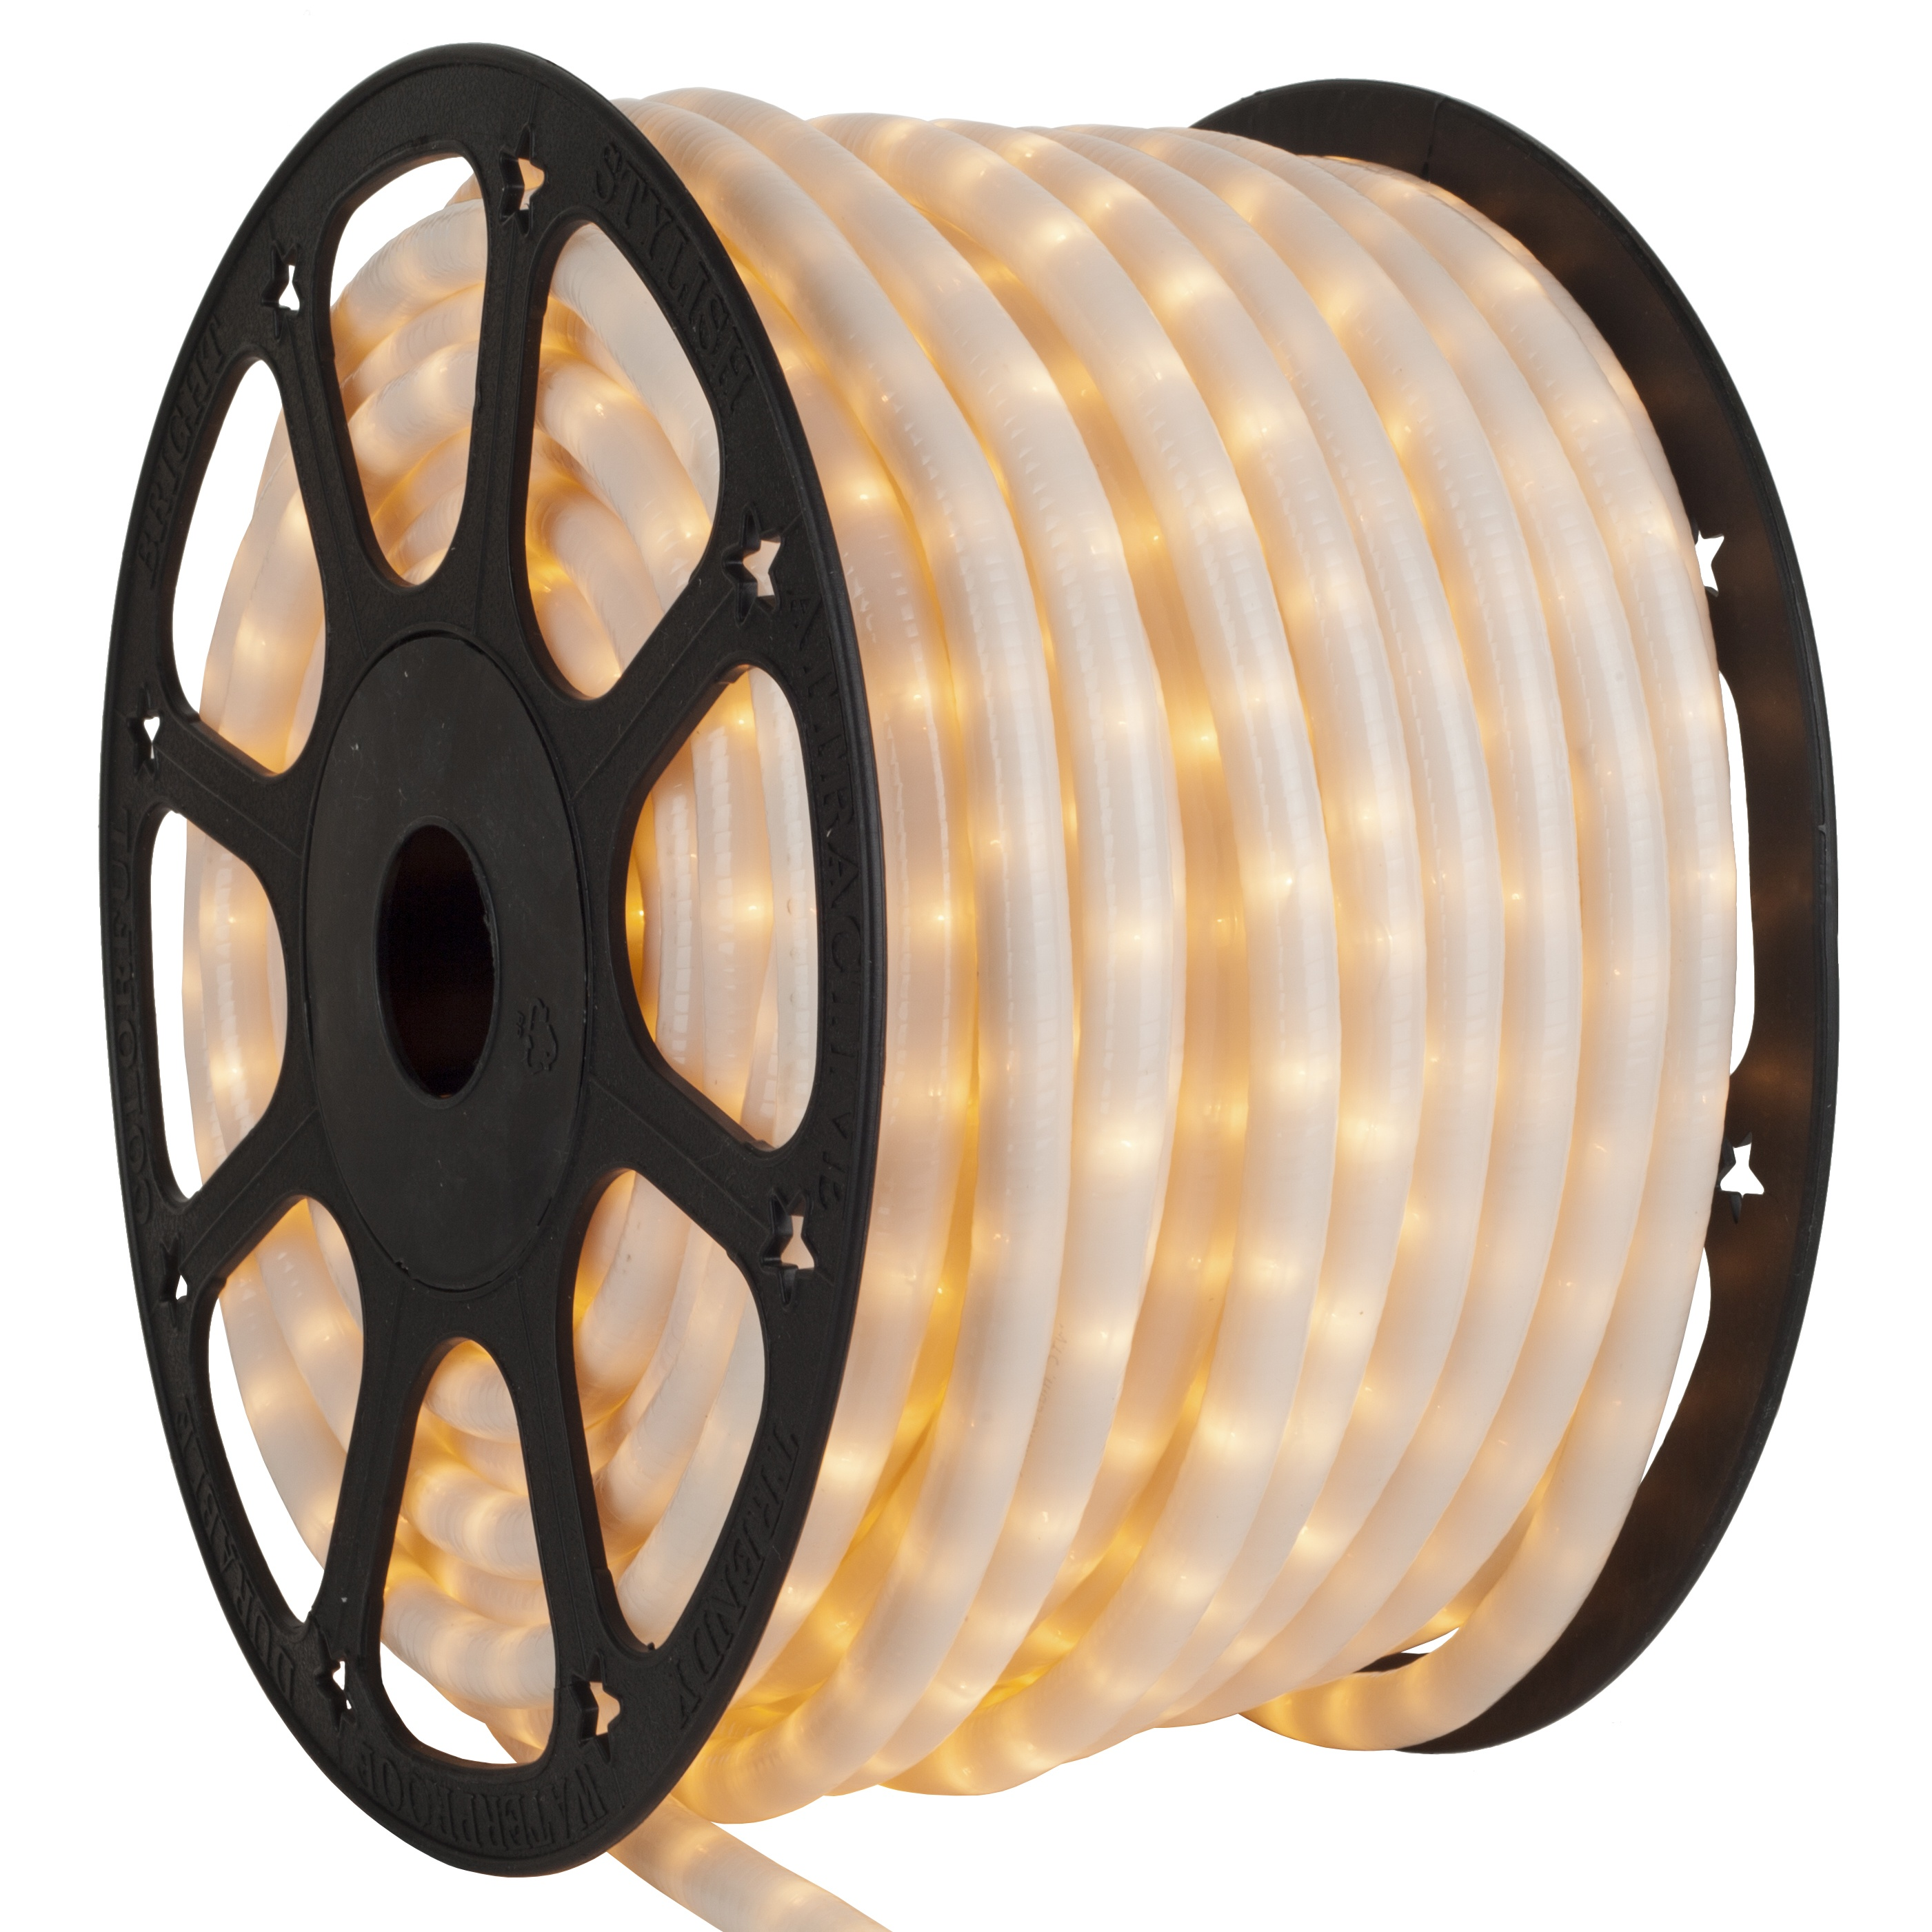 Rope Light 150 Pearl White Mini Rope Light Commercial